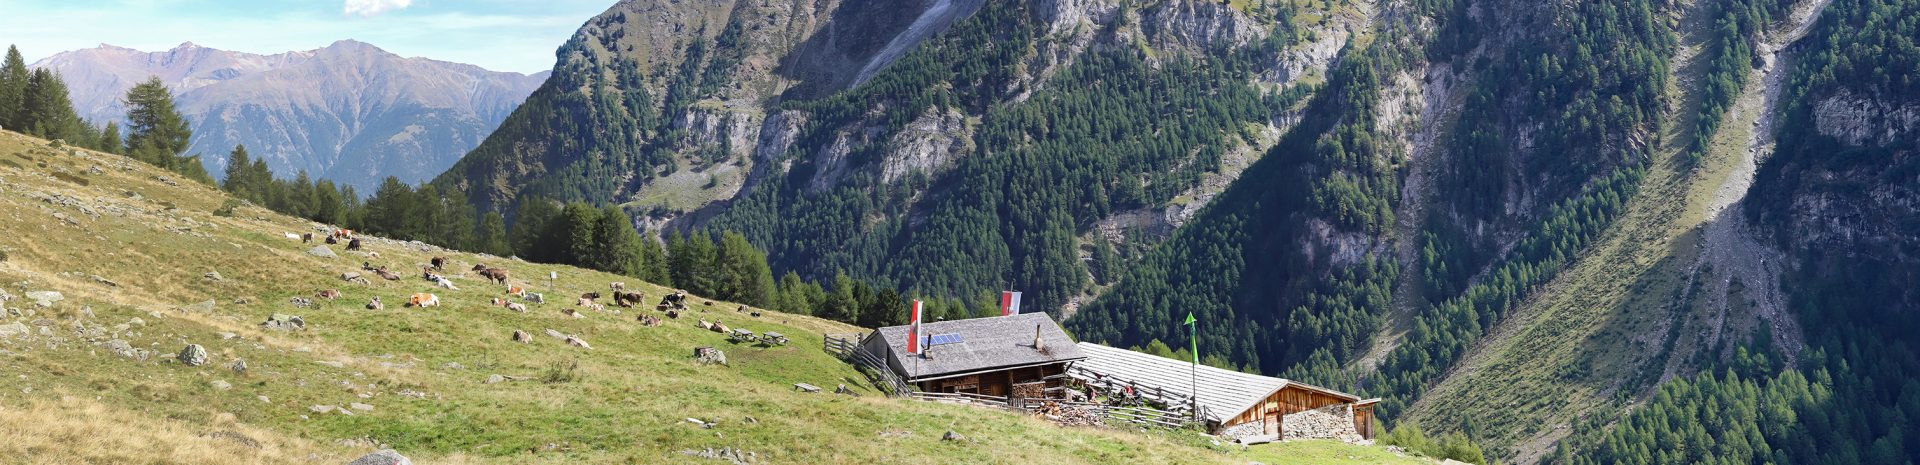 Obere Alm – Laaser Tal